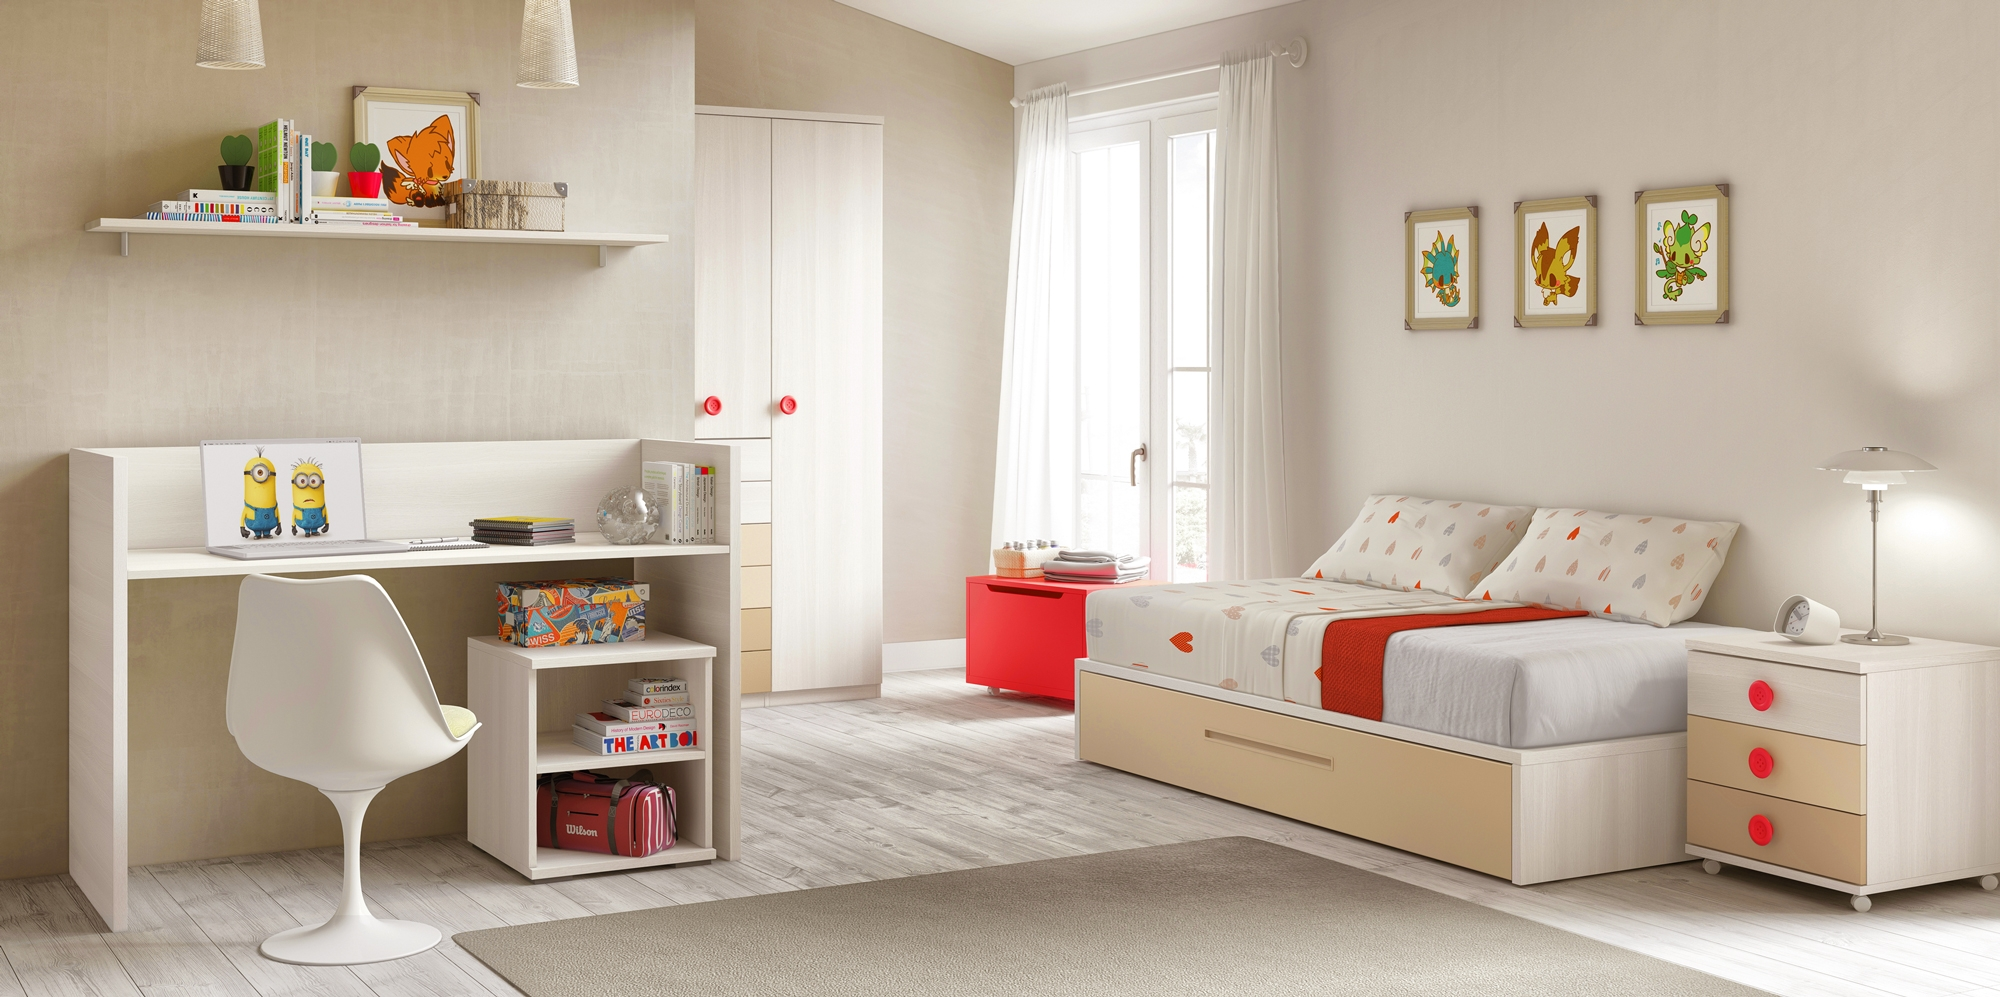 berceau b b fille bc30 lit volutif avec 4 coffres glicerio so nuit. Black Bedroom Furniture Sets. Home Design Ideas